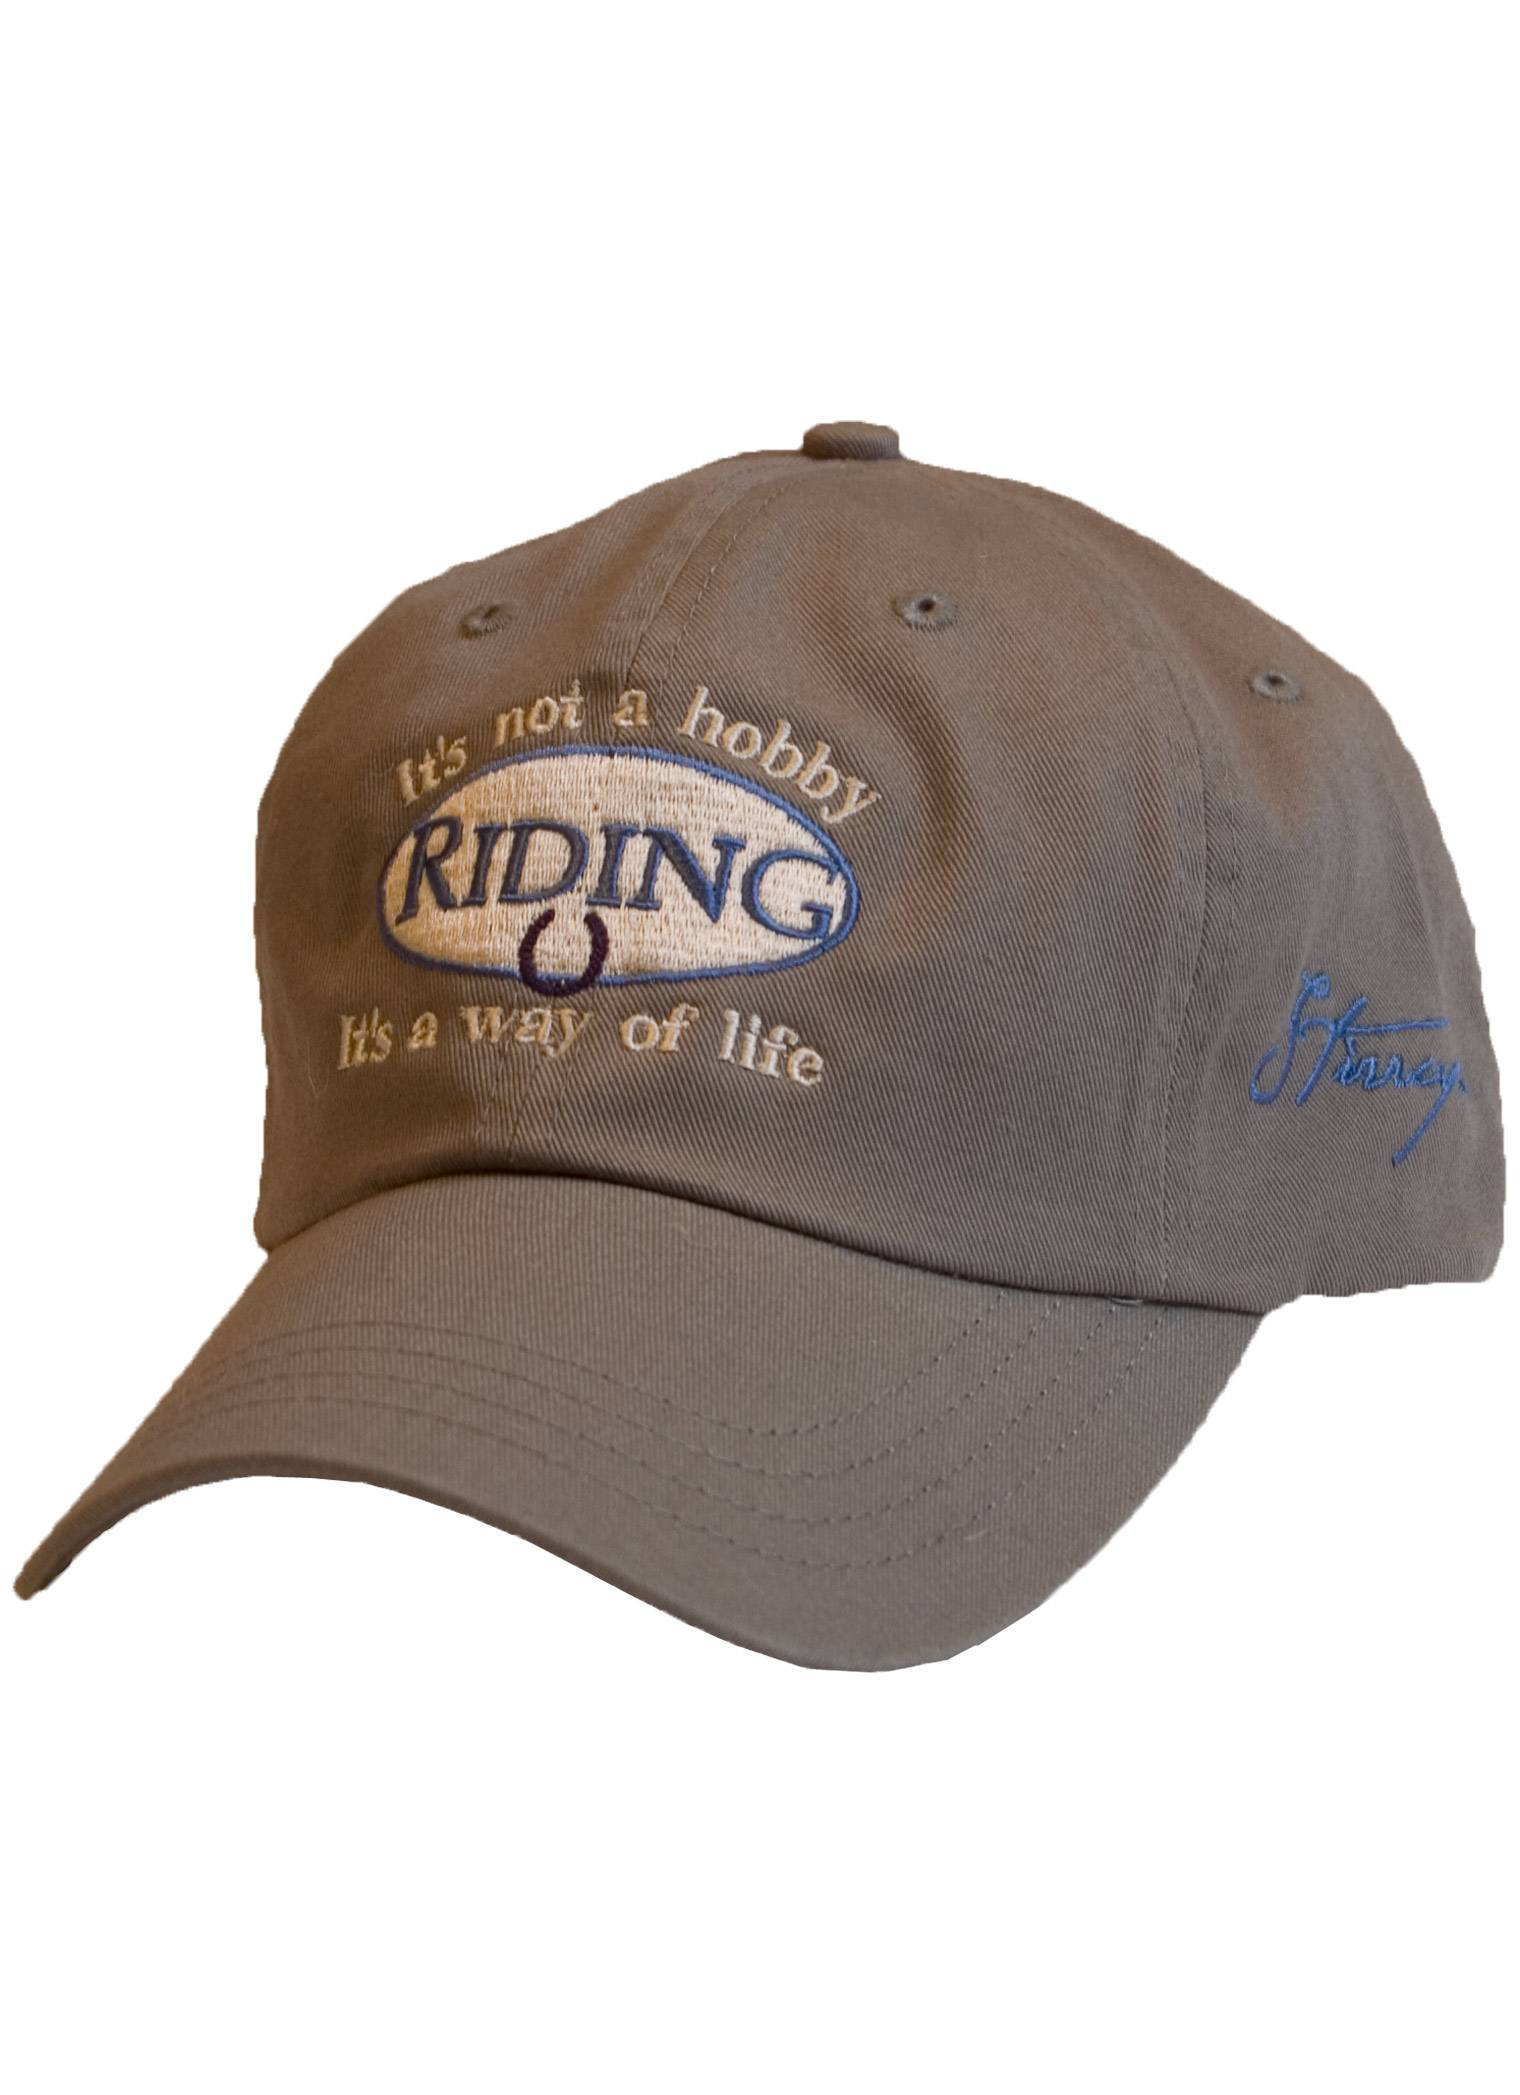 Stirrups Ladies Riding Is Not A Hobby Cotton Twill Adj. Cap